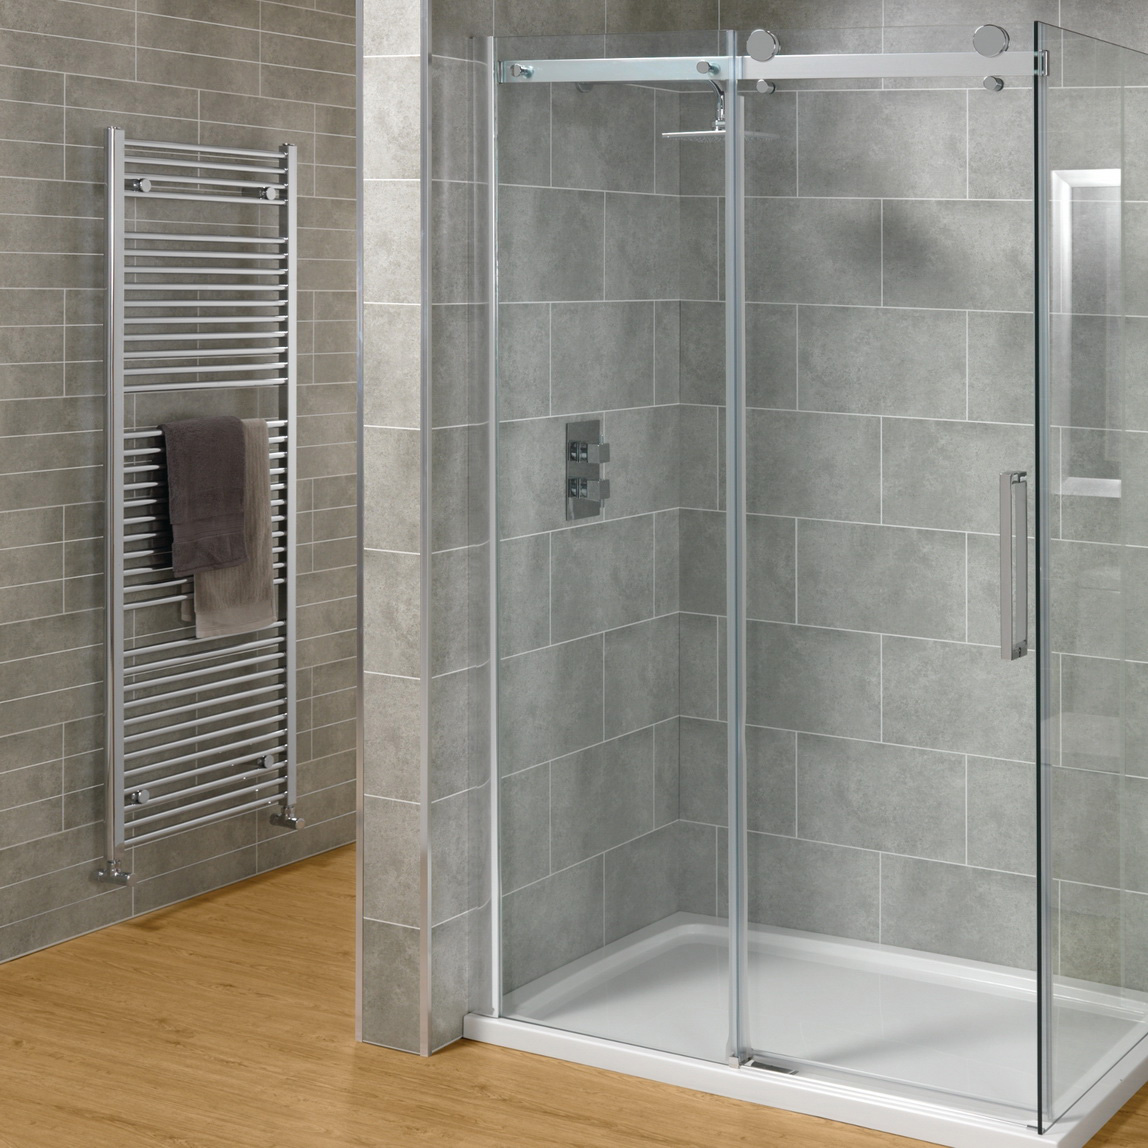 : Creative fiberglass shower enclosure featured cntemporary shower doors glass frameless bathroom decorating ideas